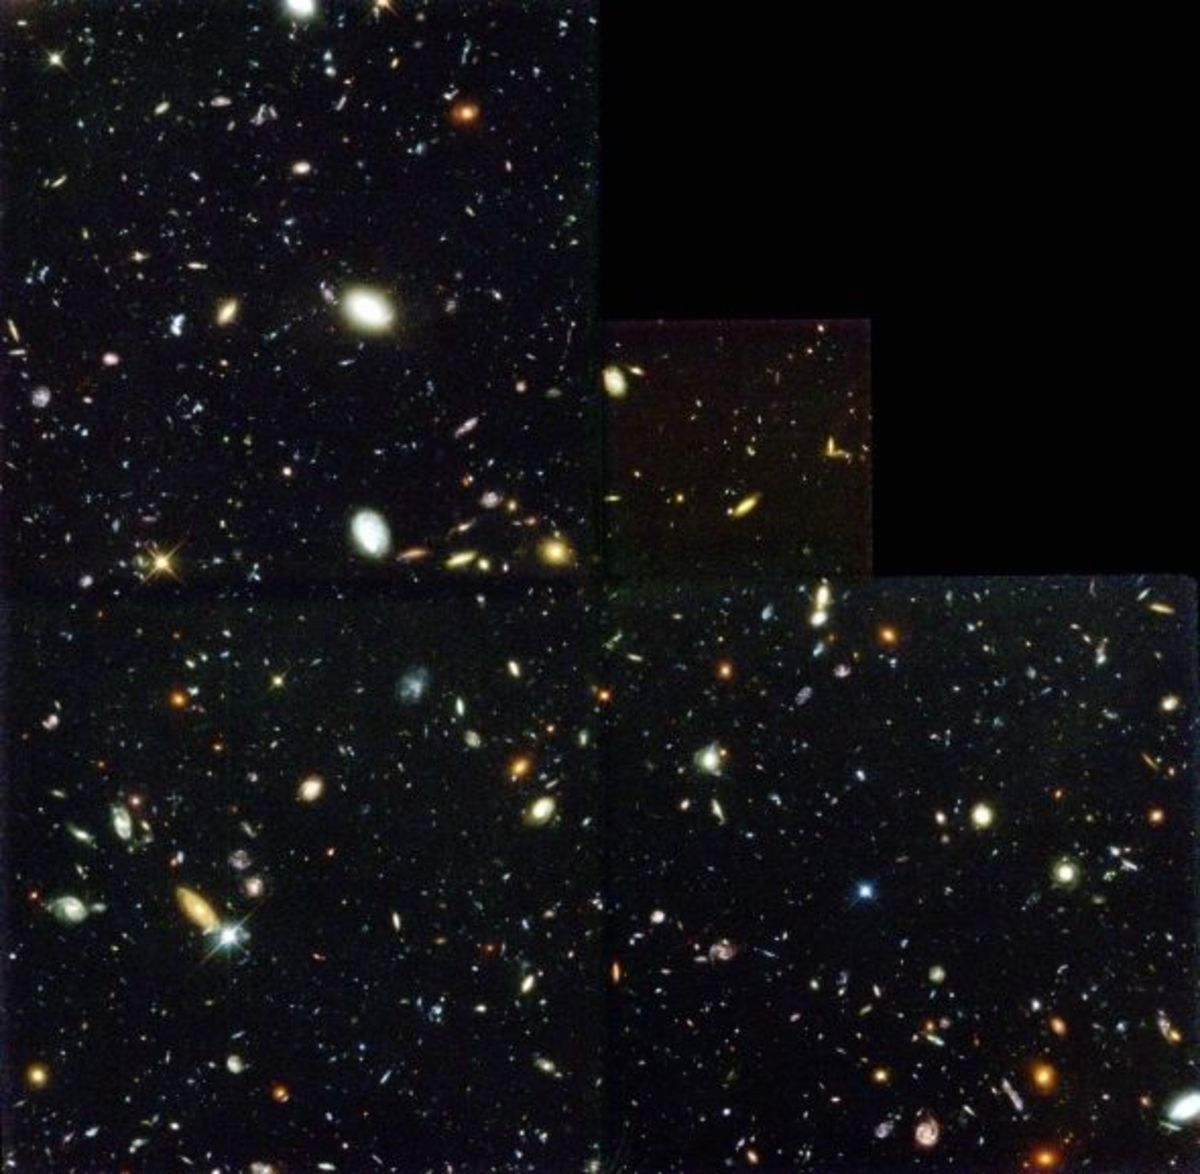 Around 3,000 galaxies 12 billions of light years away can be seen in this picture.